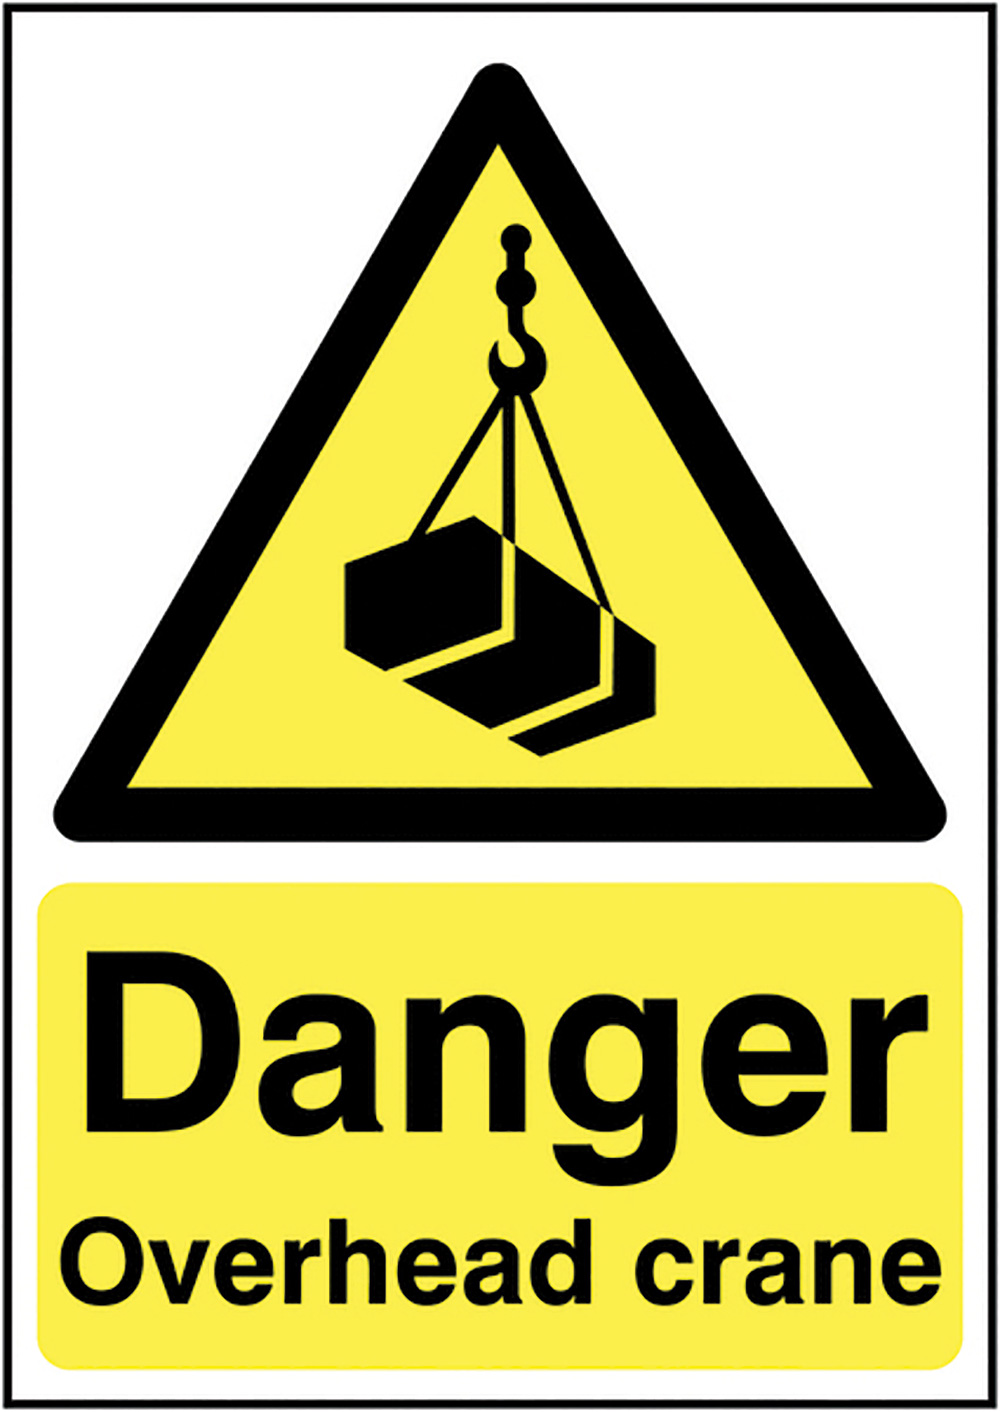 Danger Overhead Crane  420x297mm Self Adhesive Vinyl Safety Sign